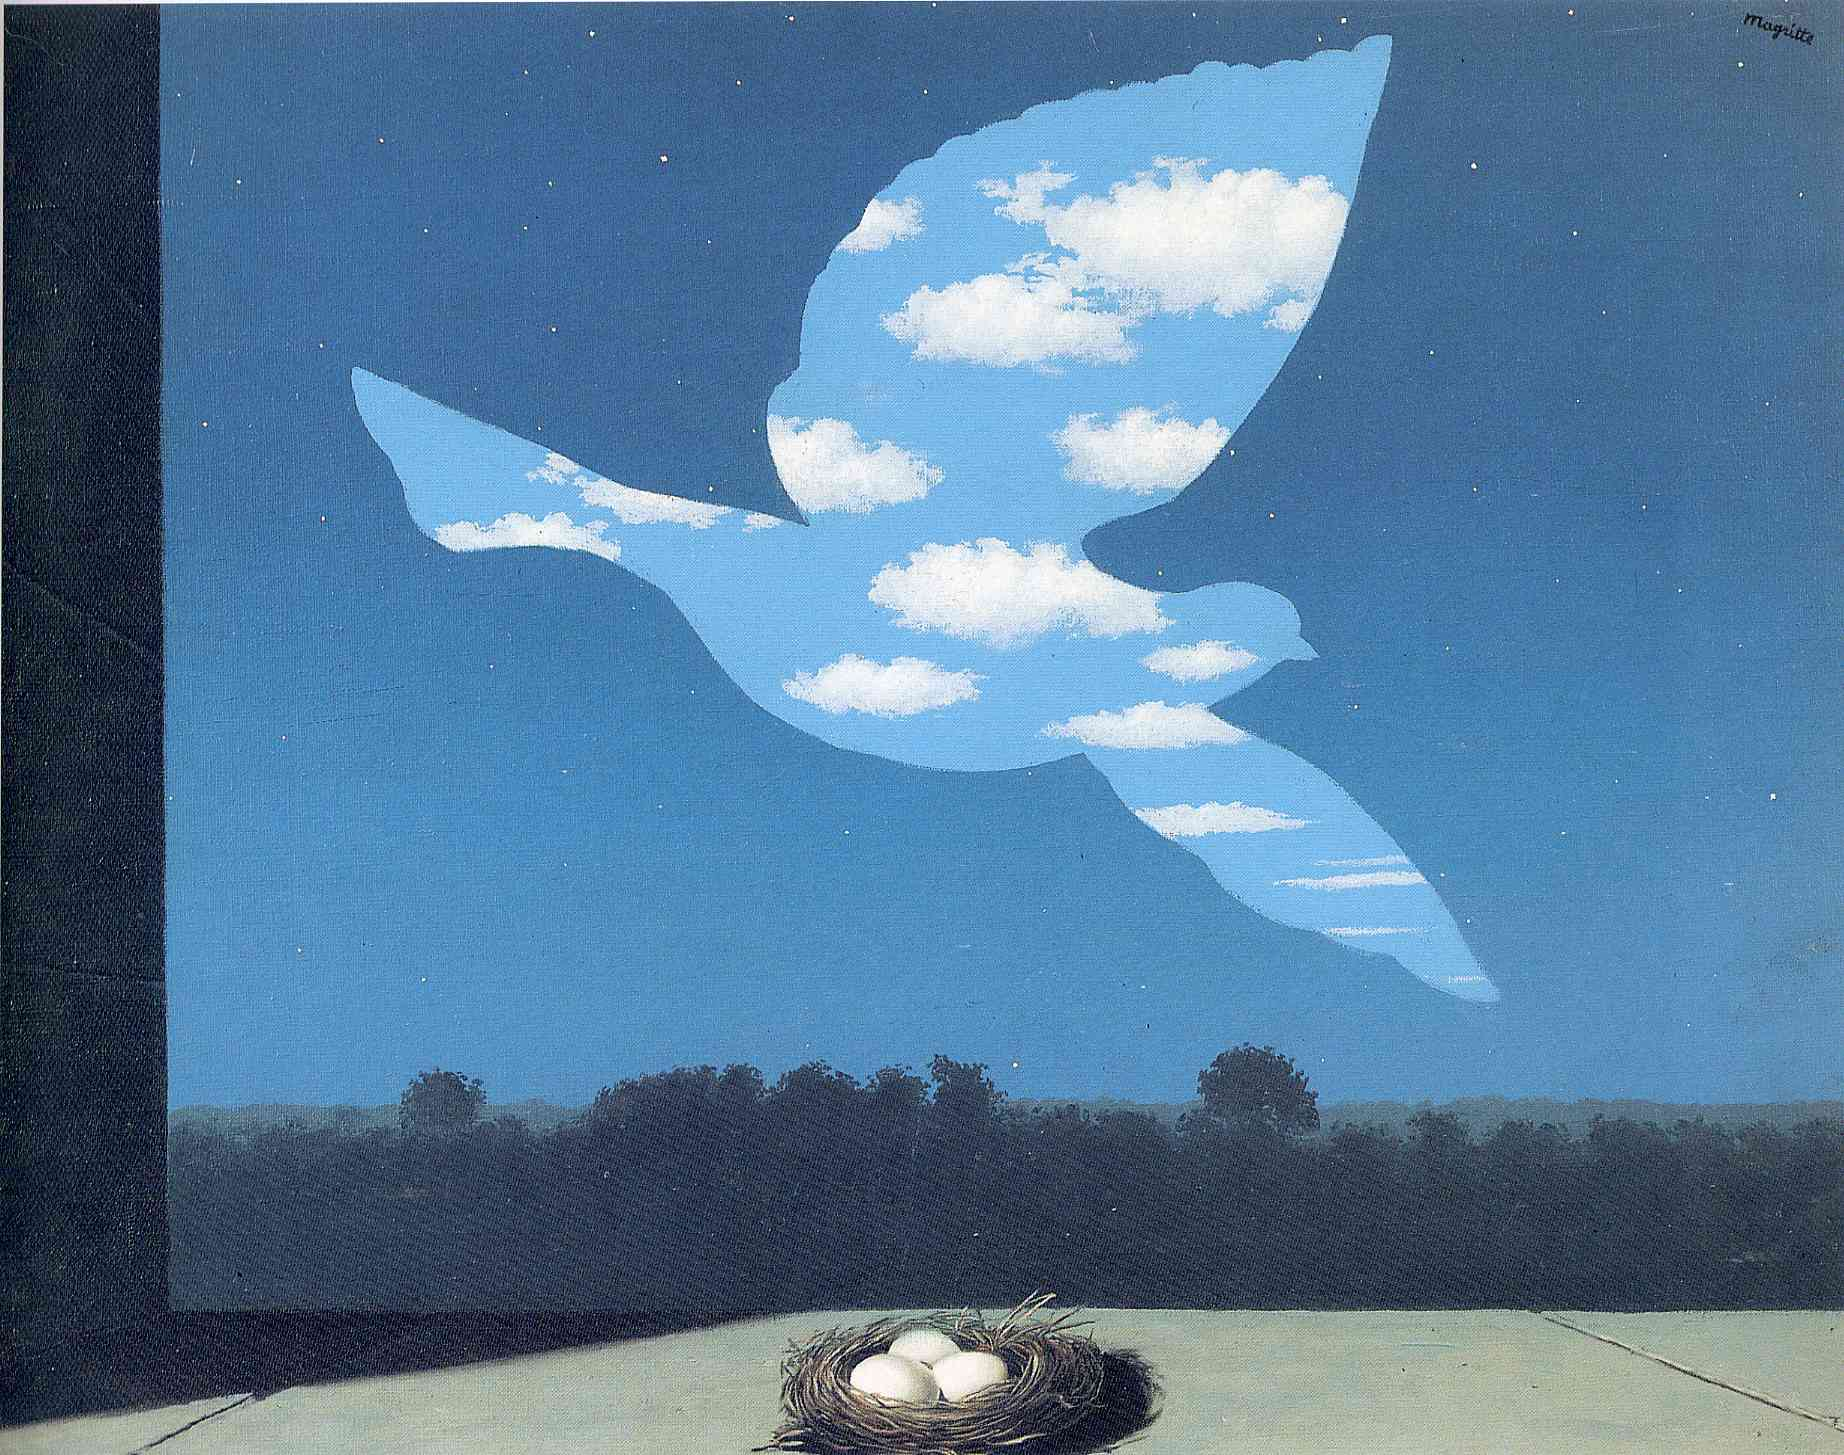 P Rene Magritte Surrealism - Lessons - Tes Teach